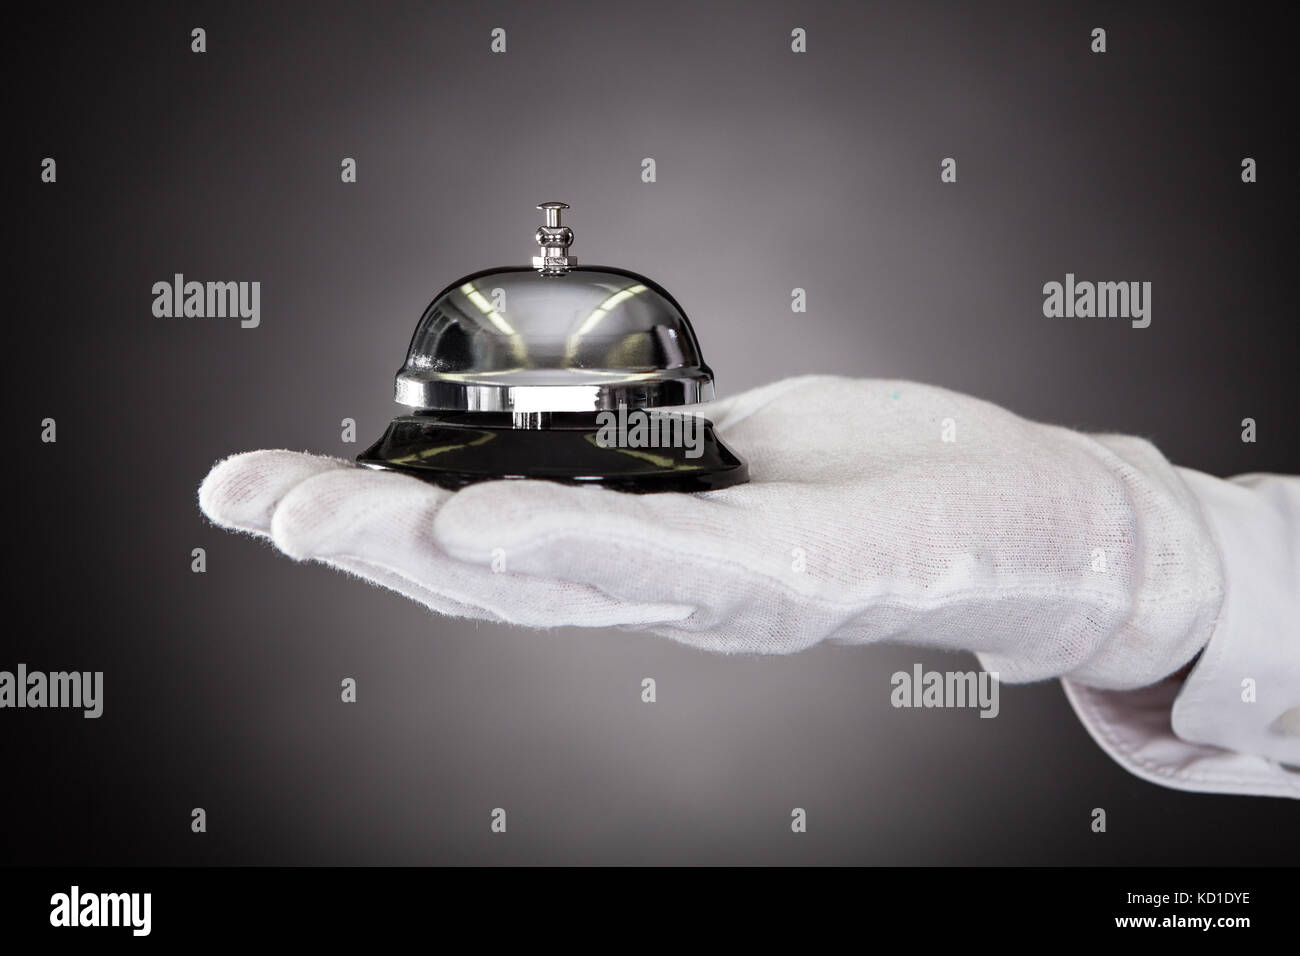 Close-up Of Hand With White Gloves Holding Service Bell - Stock Image